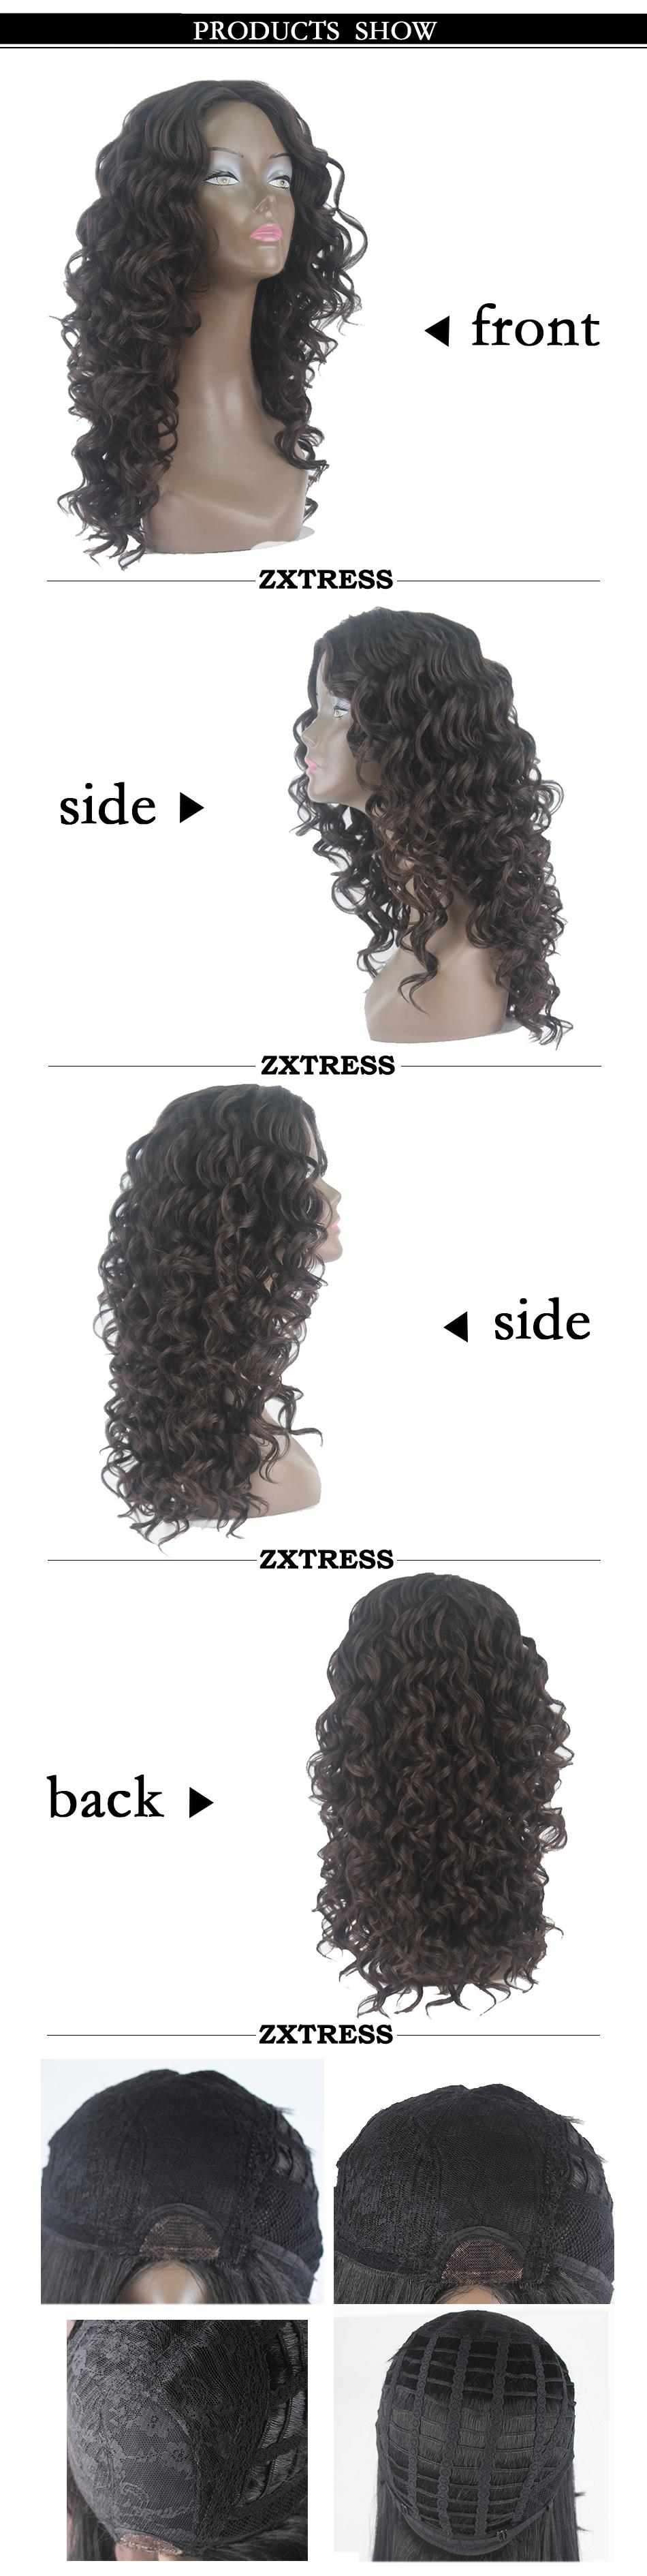 Top Sale Kinky Loose Curly Wigs Synthetic Lace Wigs With Full Bangs Heat Resistant Glueless Wigs For Afro African American Black Women 22